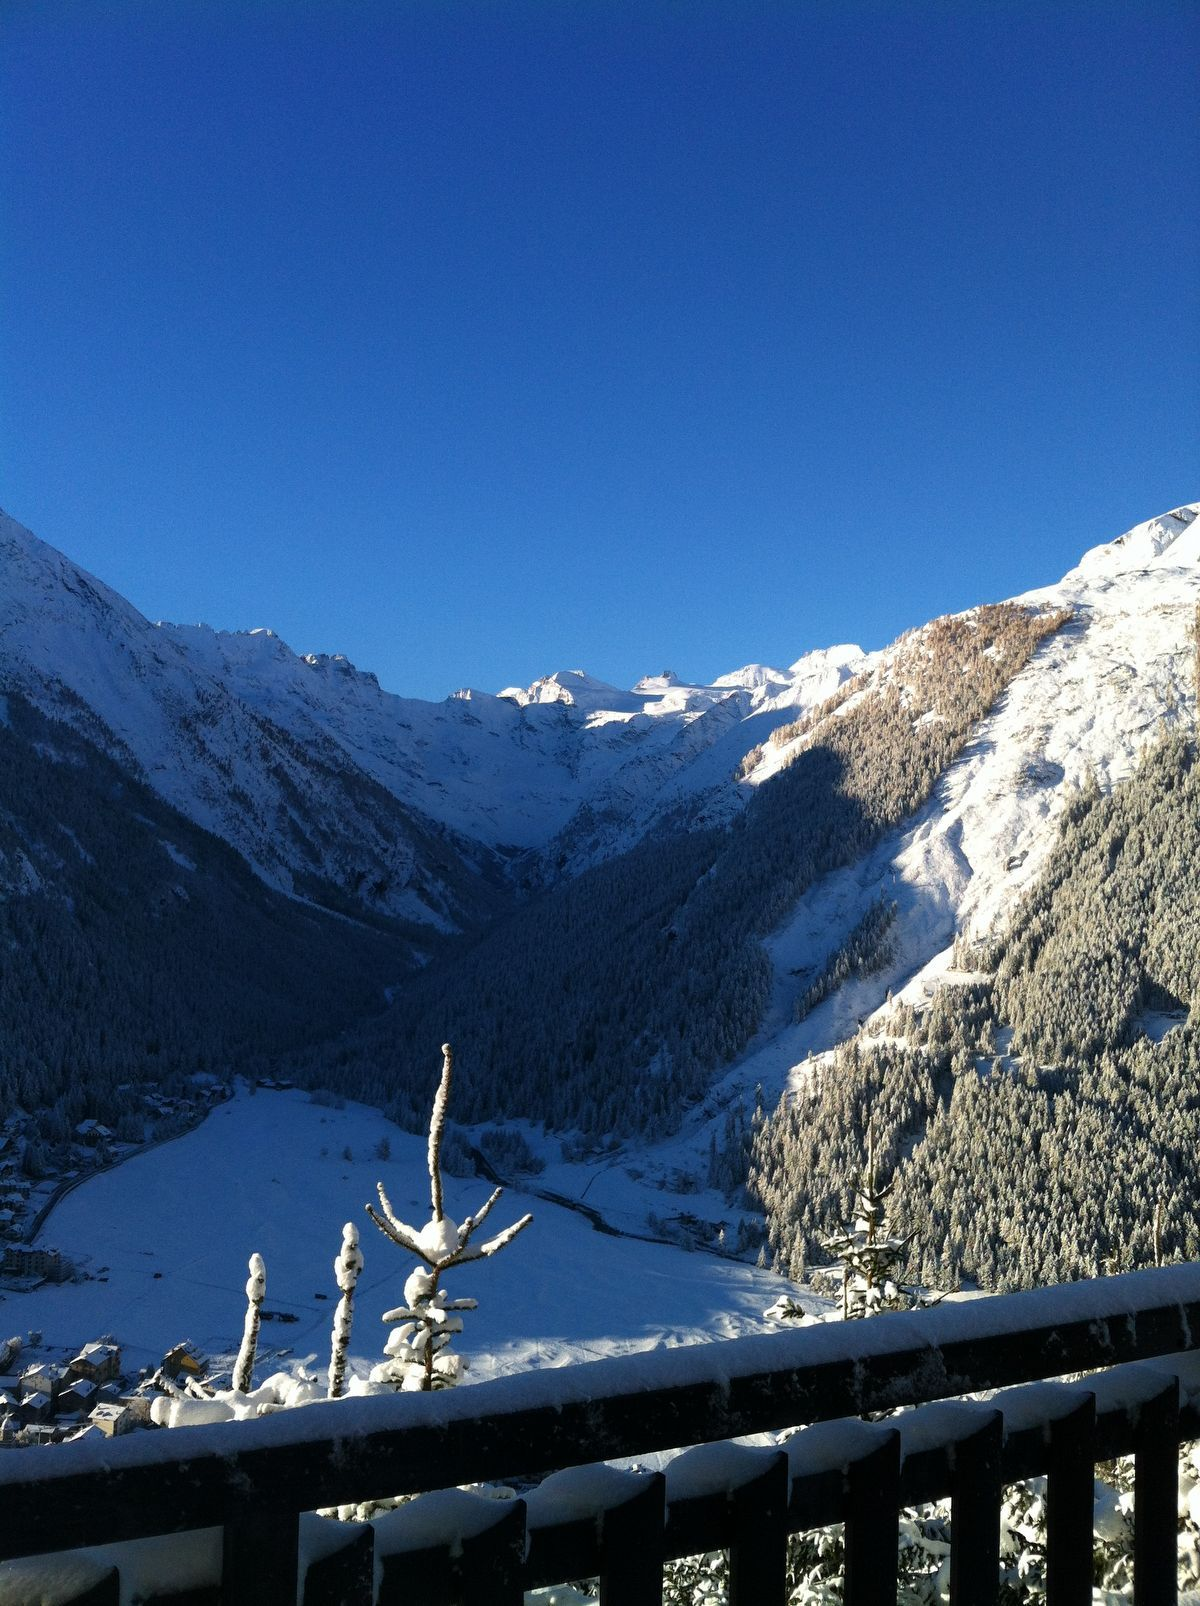 View from Belvedere hotel in Cogne in winter